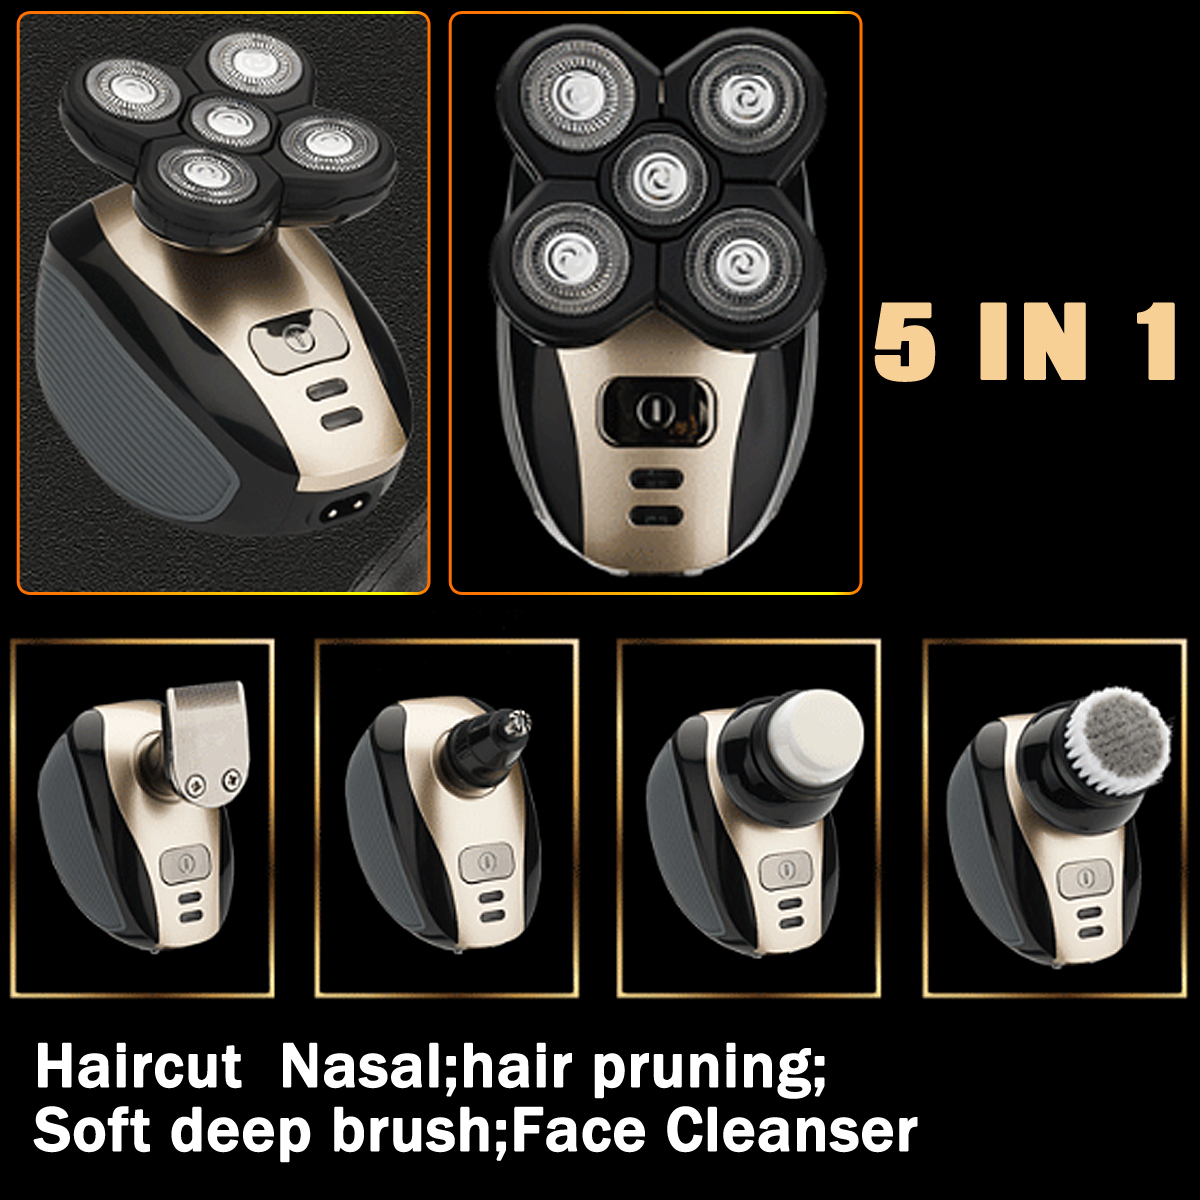 5 In 1 Cordless Hair Clipper Rechargeable Bald Head Shaver